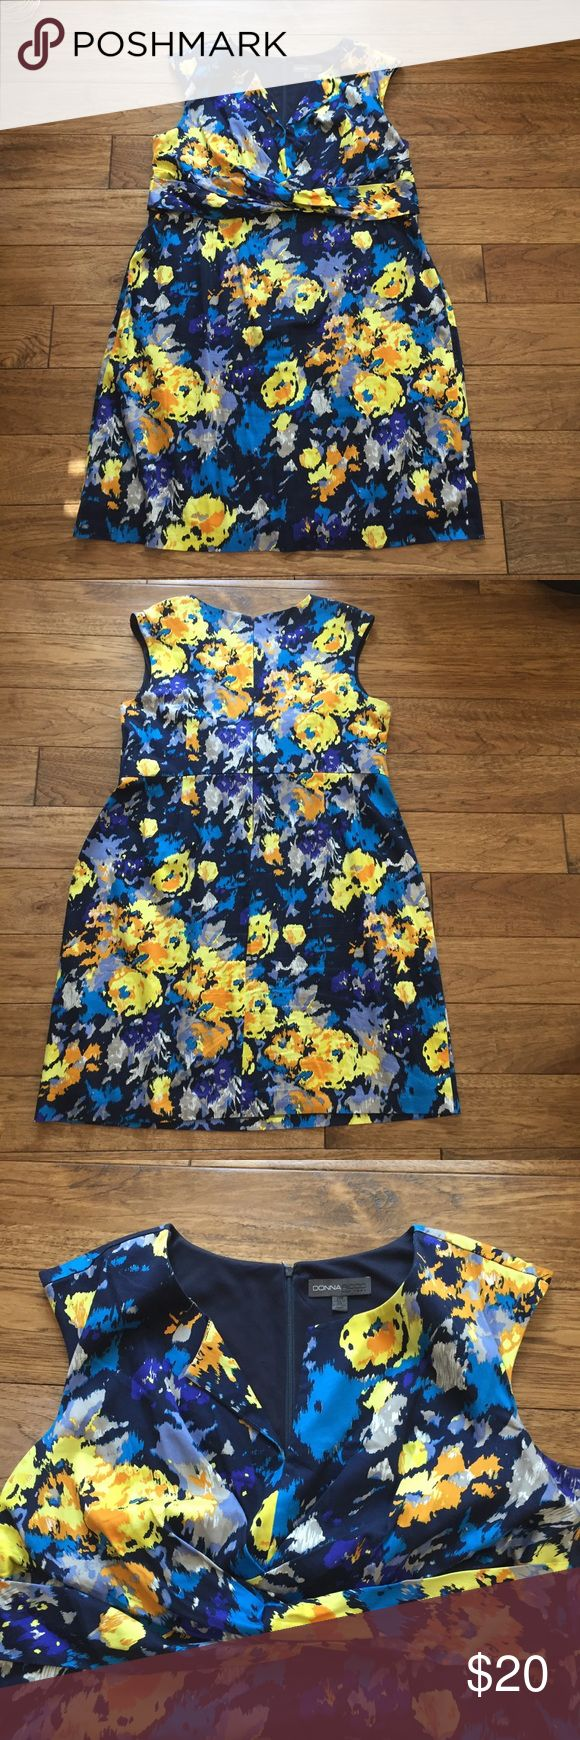 Donna Ricco Floral Blue/Yellow Dress Donna Ricco Floral Blue/Yellow Dress - excellent condition. Hardly worn. Perfect for work or formal events. Beautiful detailing! Donna Ricco Dresses